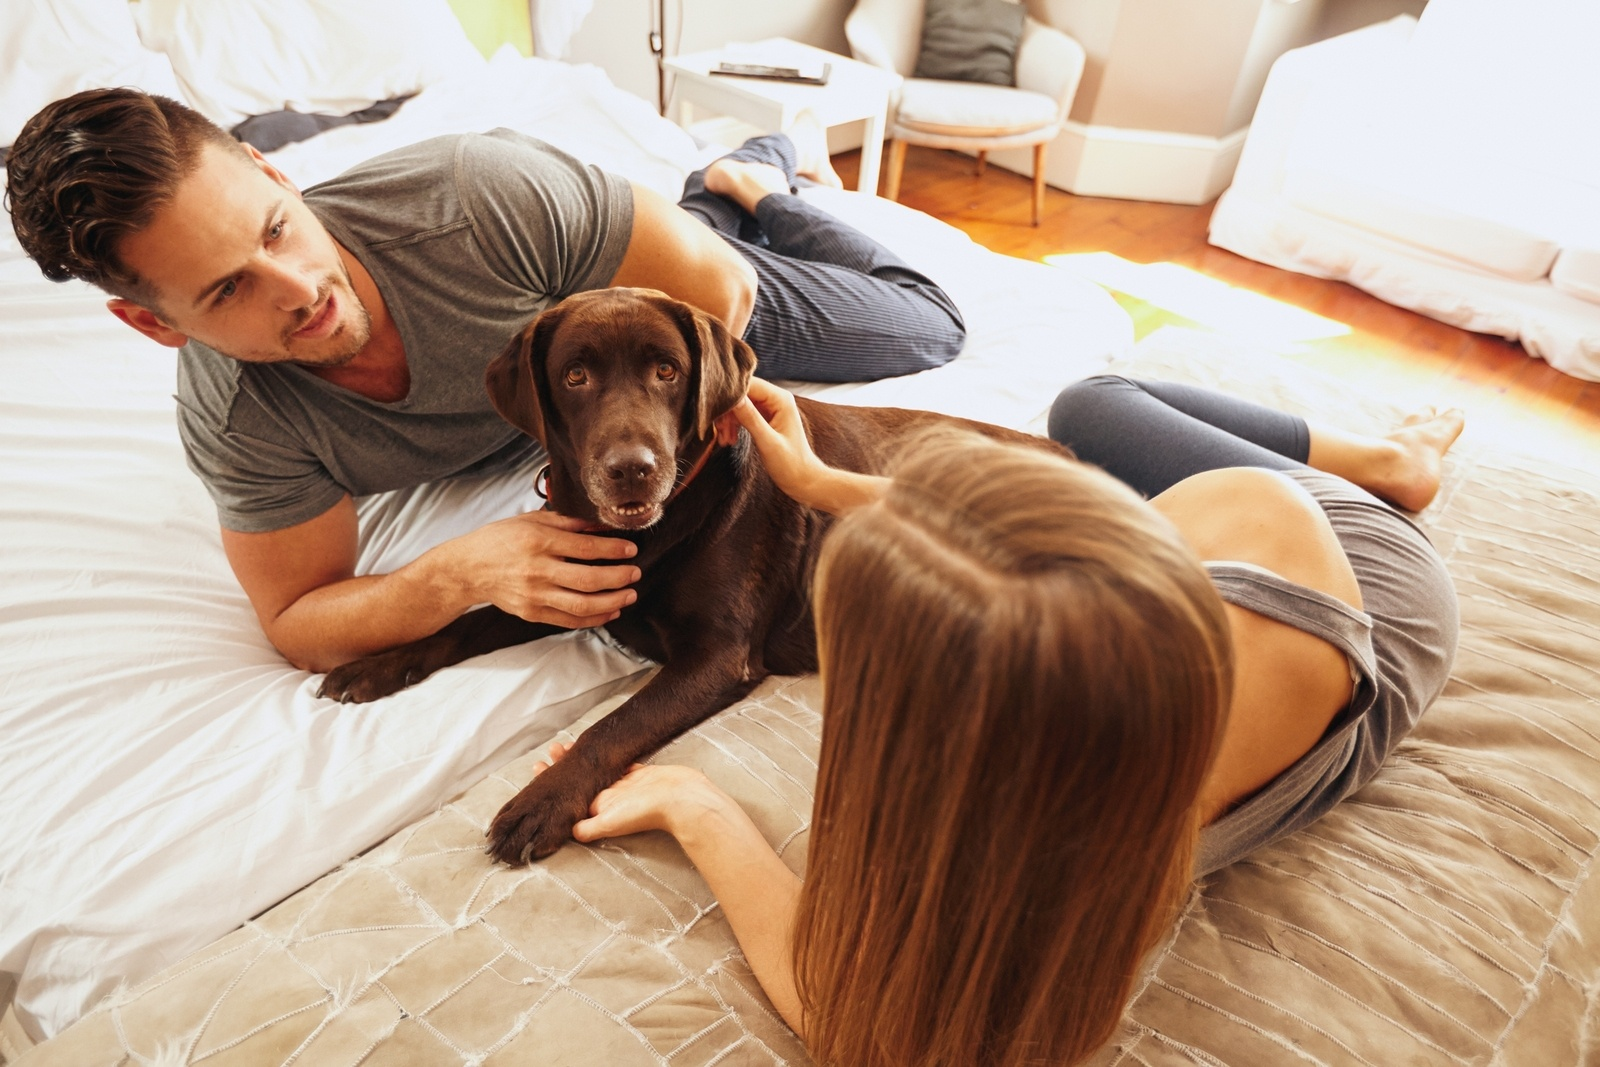 bigstock-Young-Couple-On-Bed-With-Pet-D-91104149.jpg